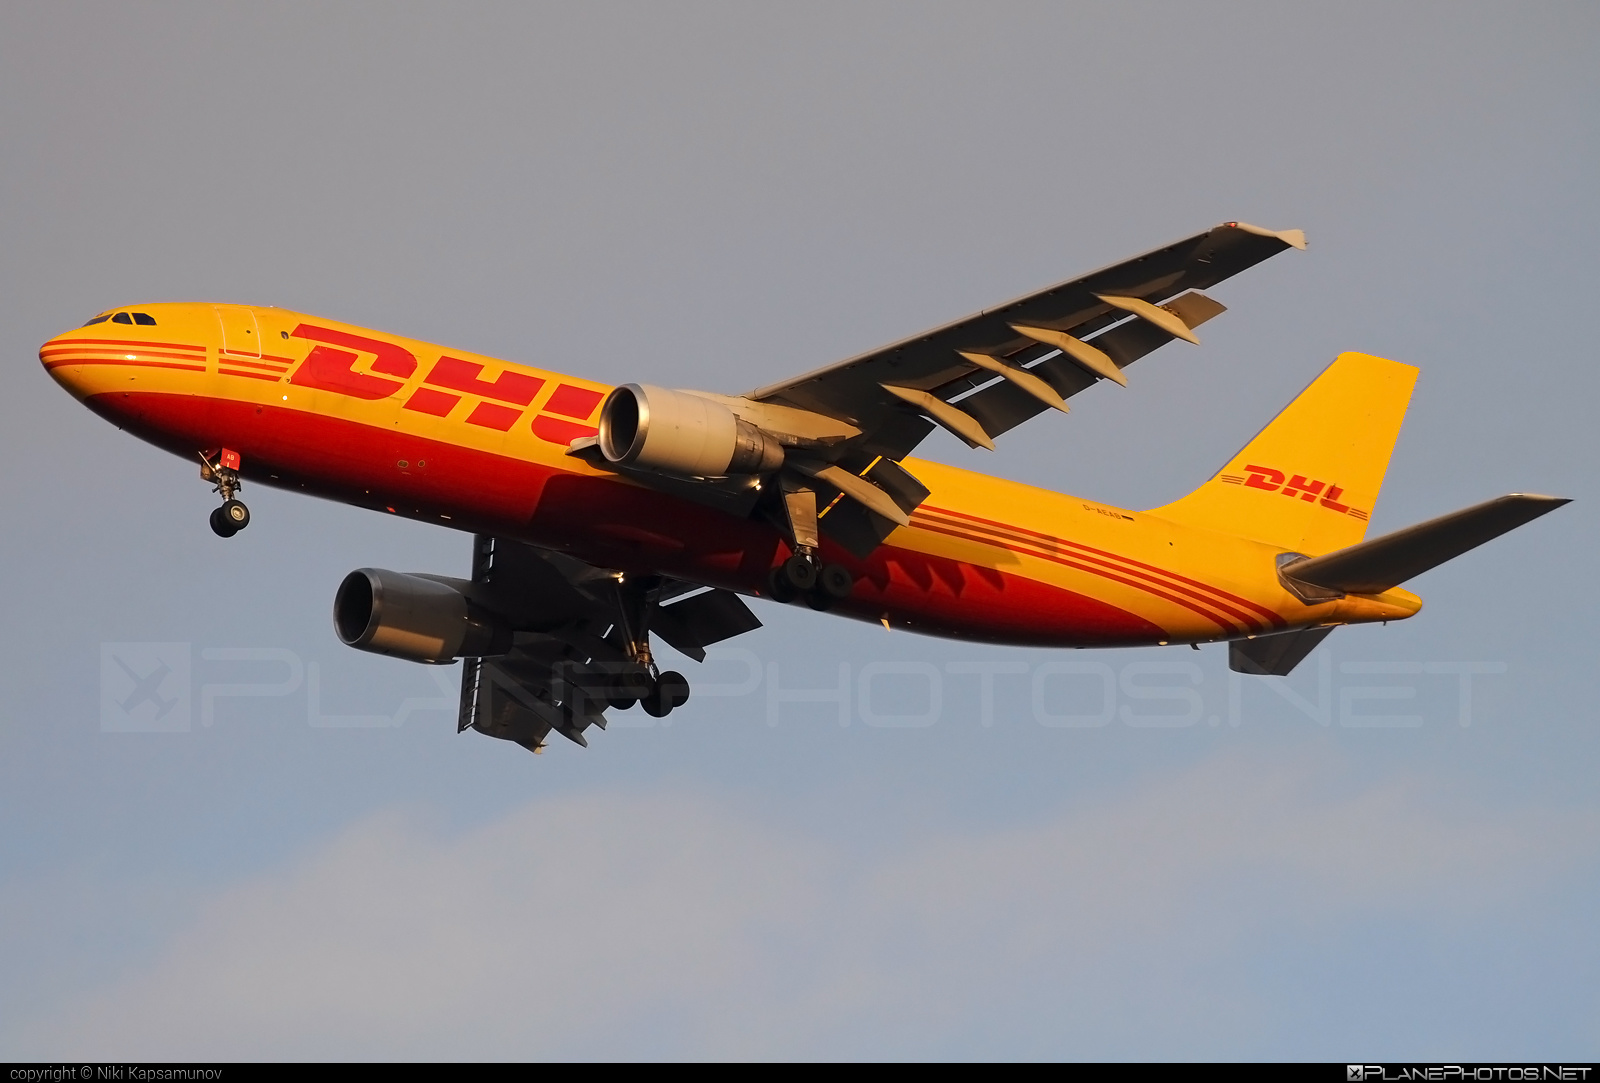 Airbus A300B4-622RF - D-AEAB operated by DHL Cargo #a300 #airbus